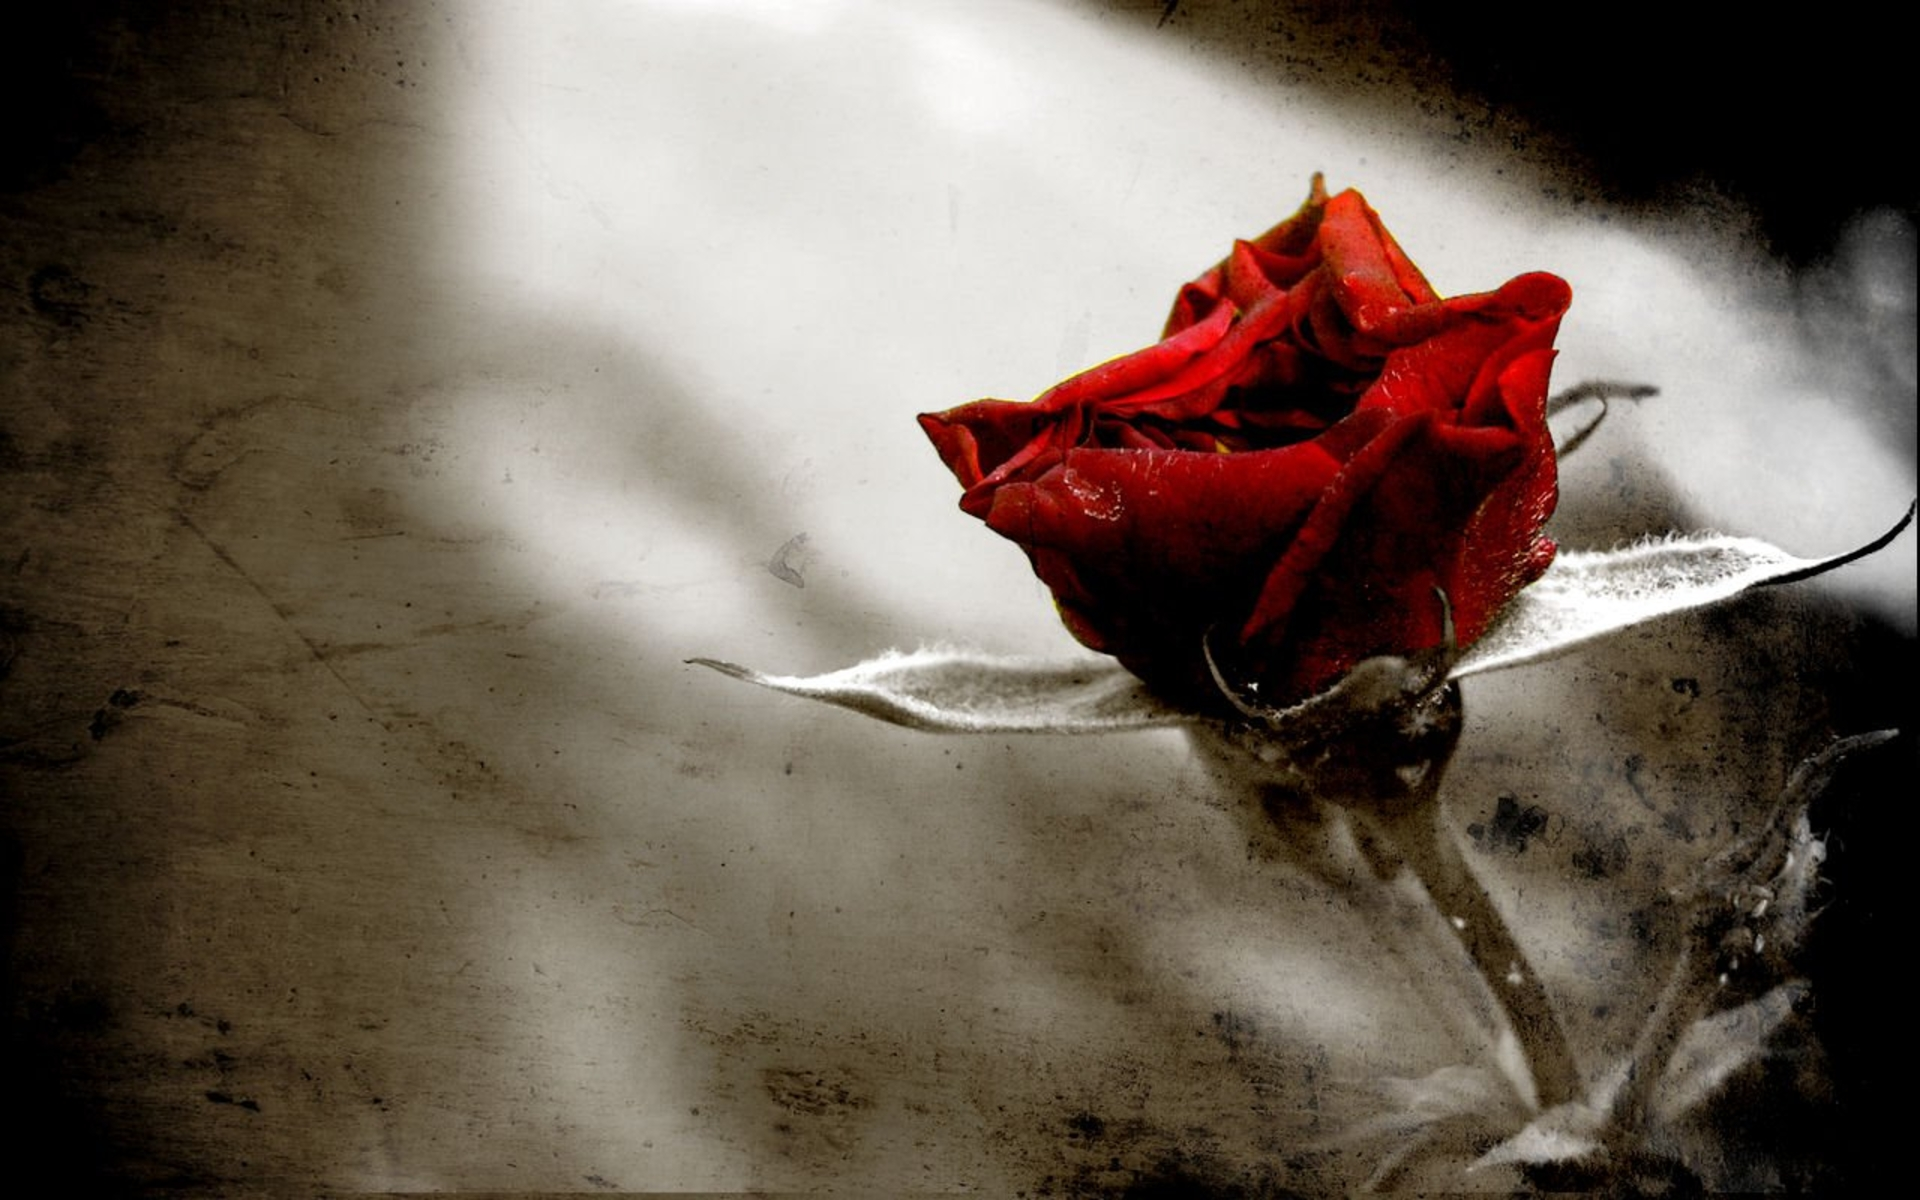 Wallpaper gothic rose imageres newresolution   989127 1920x1200